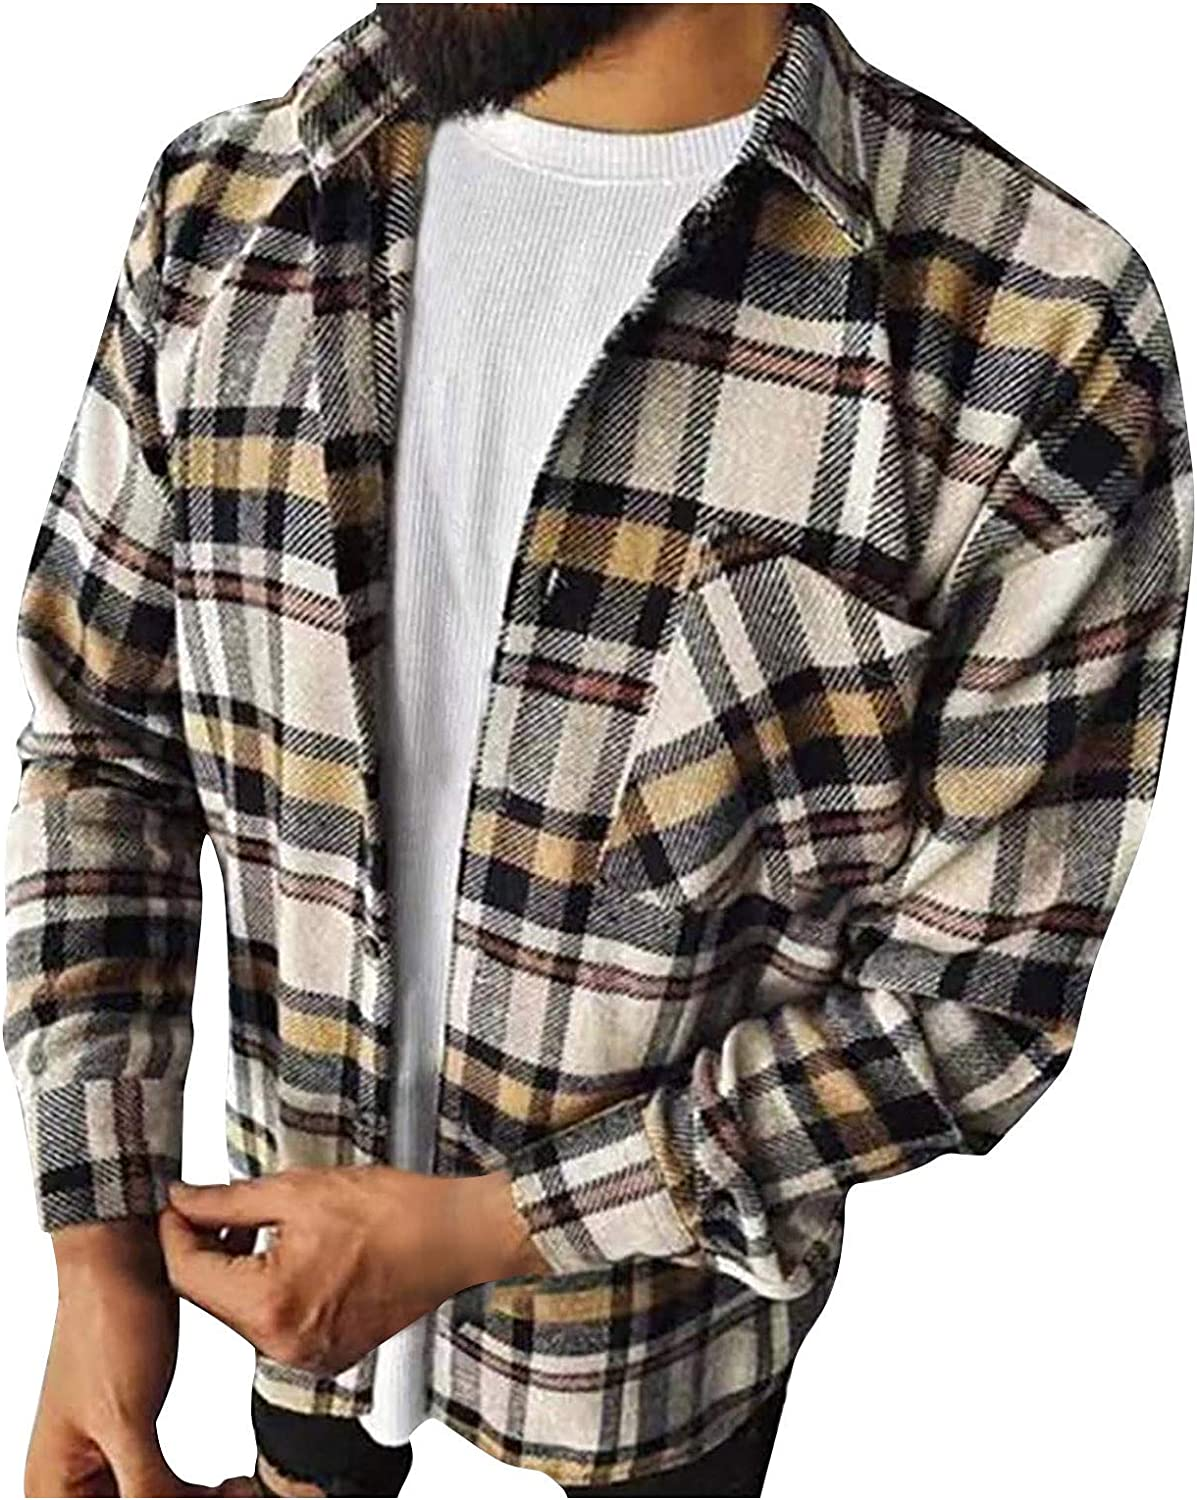 Men's Plaid Stamp Jackets,Long Sleeved Warm Lined Plush Thicken Shirt V195